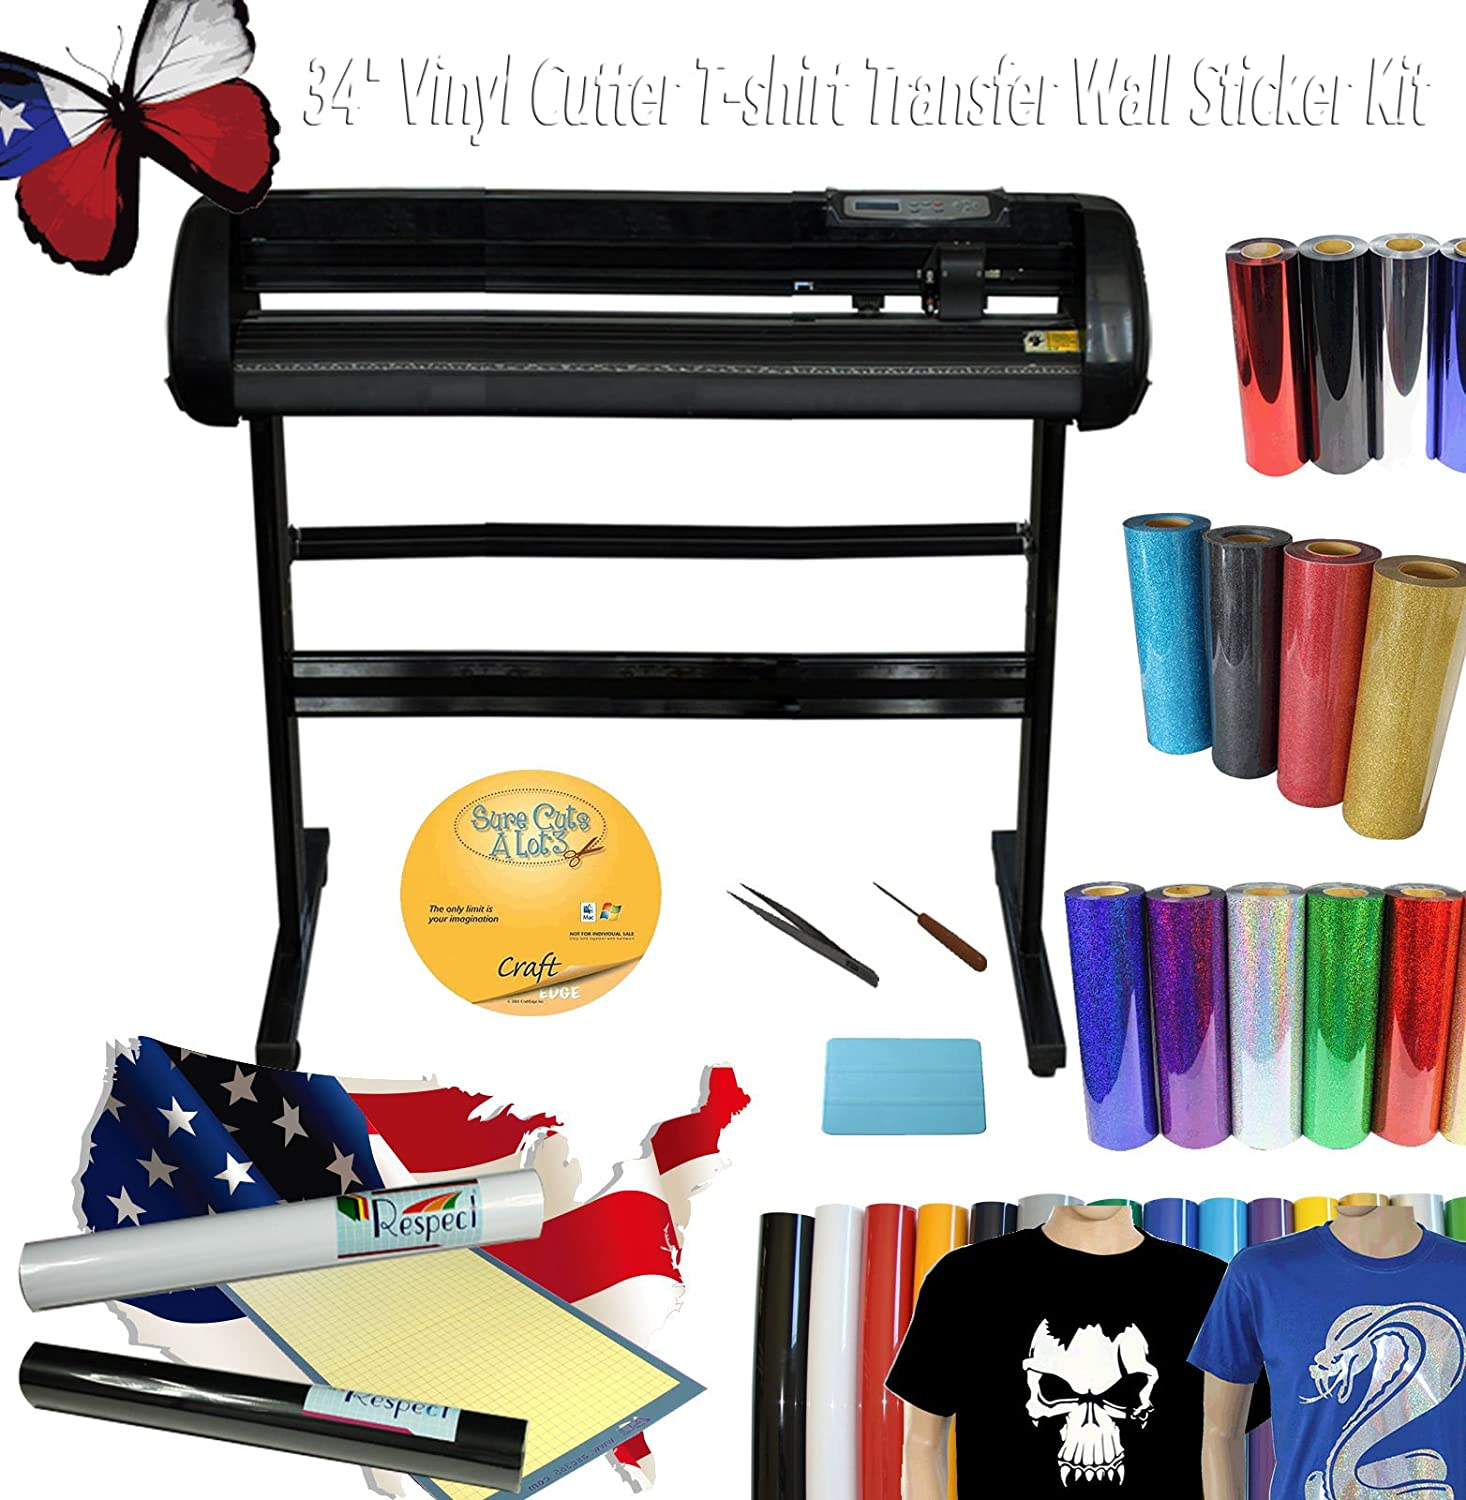 Amazoncom G Vinyl Cutter Plotter Tshirt Heat Transfer - Custom vinyl decals cutter for shirts